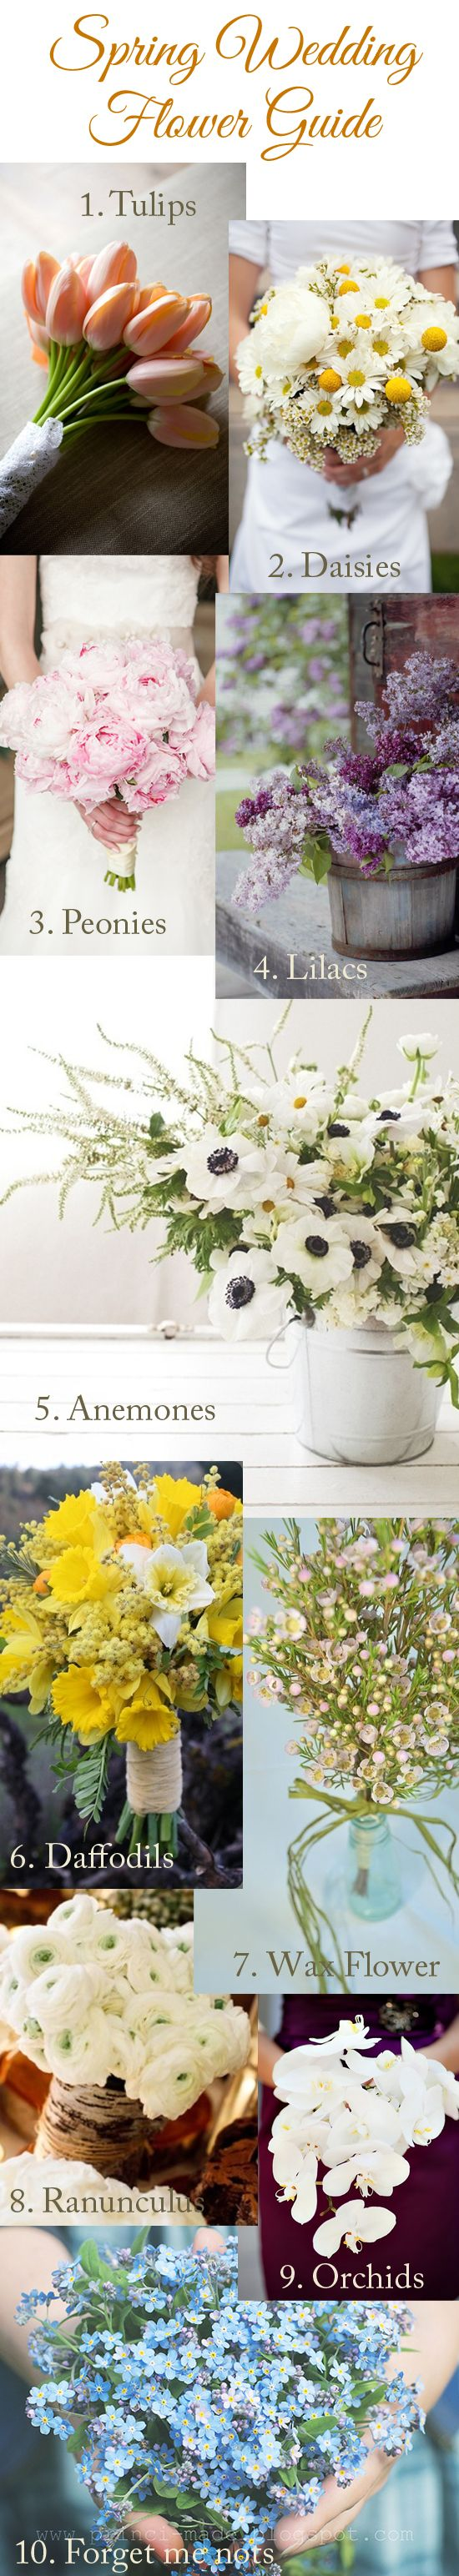 Best 25 spring flowers ideas on pinterest spring flower spring wedding flower guide wonder if this works for early summer too dhlflorist Images